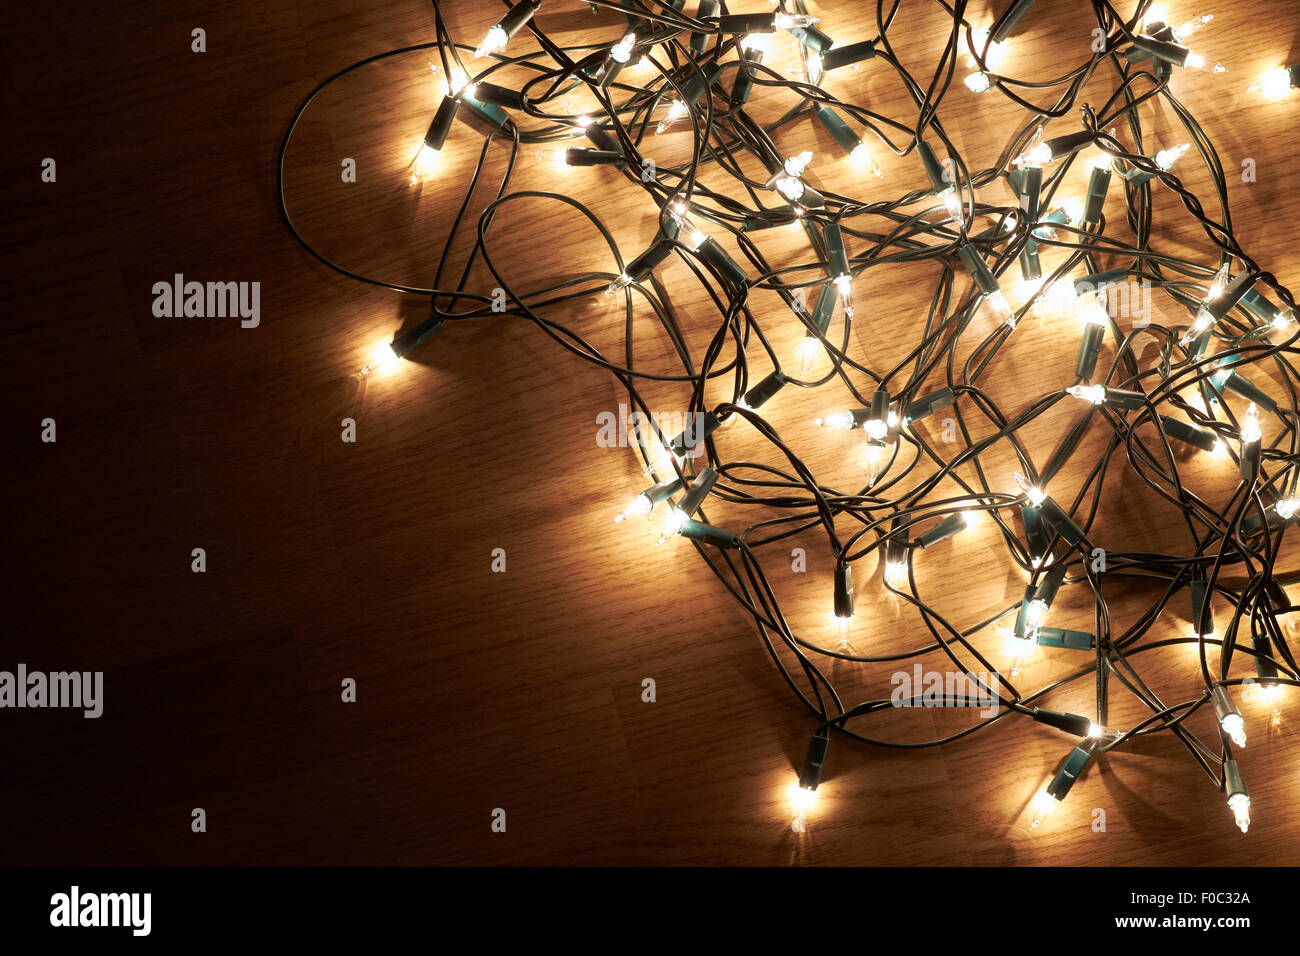 Traditional Christmas Tree lights lying on a wooden floor. - Stock Image